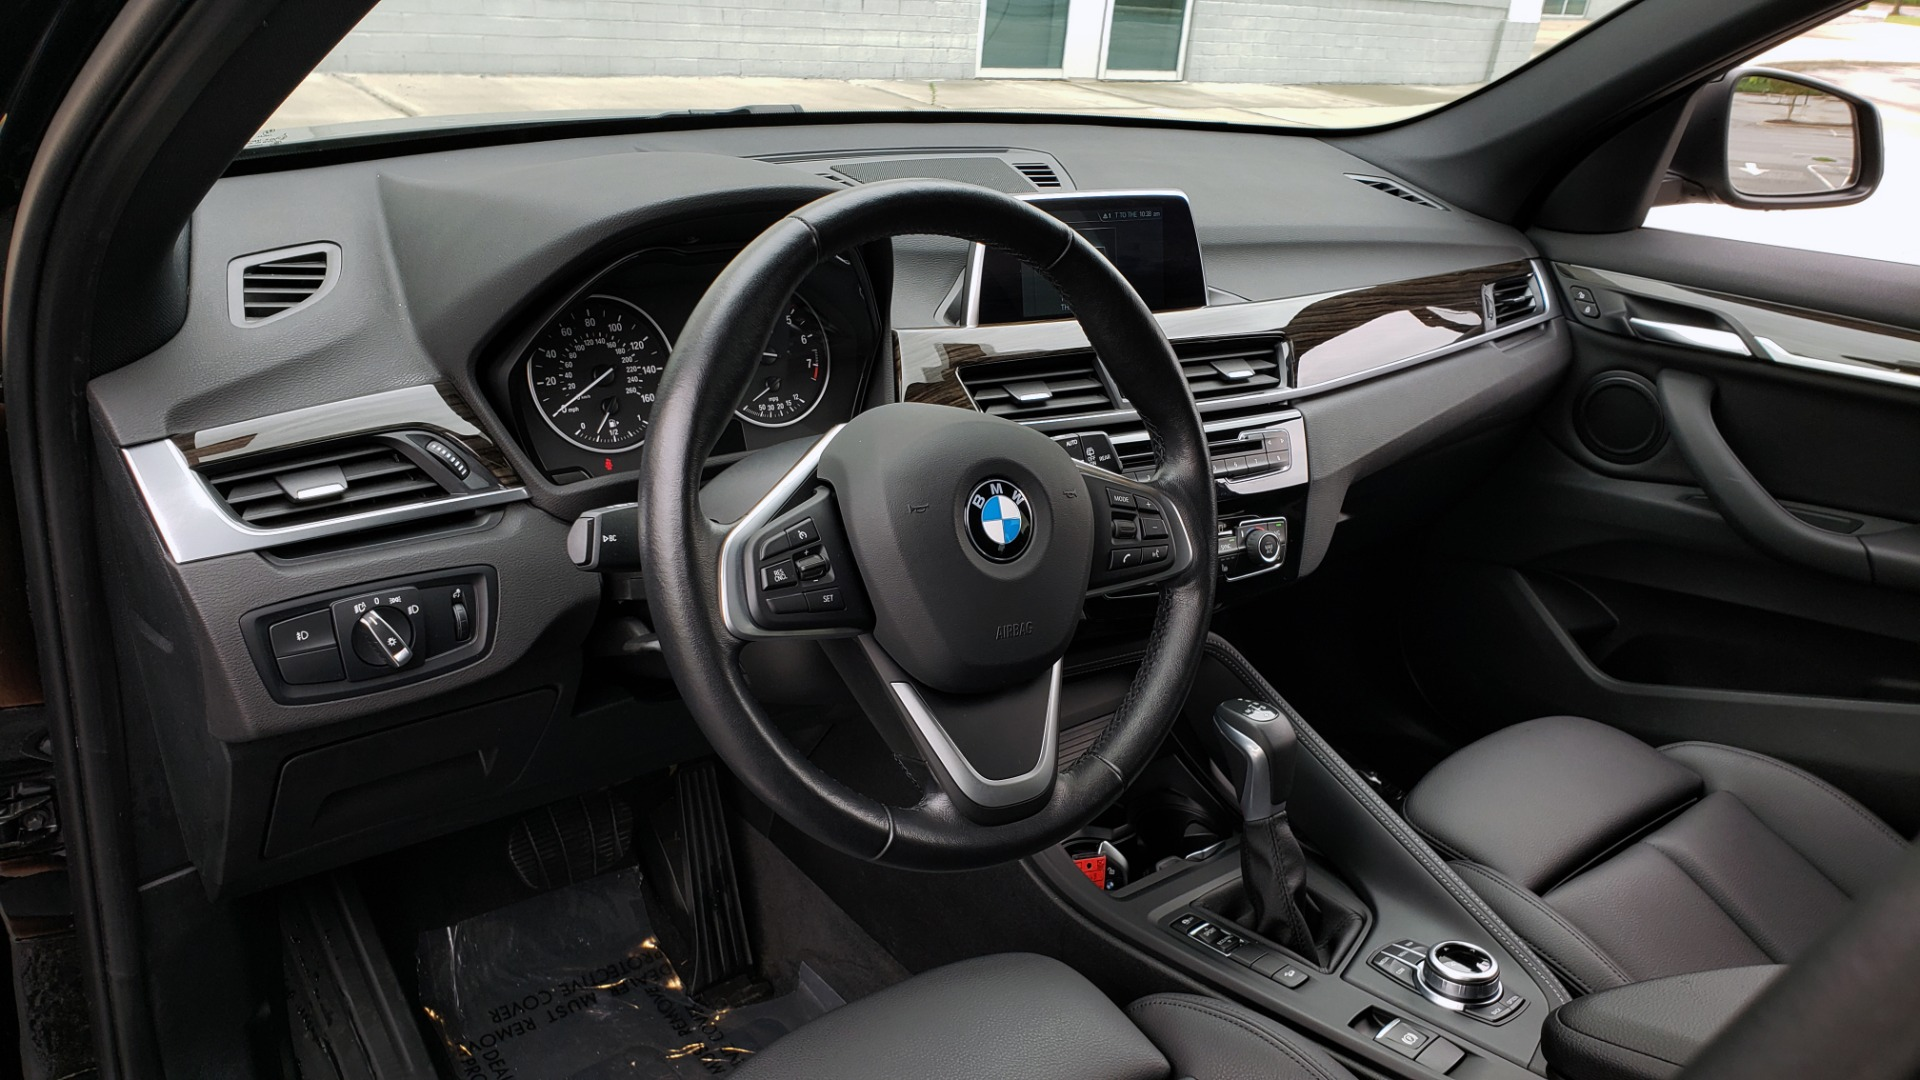 Used 2018 BMW X1 XDRIVE28I / CONV PKG / NAV / HTD STS / PANO-ROOF / REARVIEW for sale $30,995 at Formula Imports in Charlotte NC 28227 38